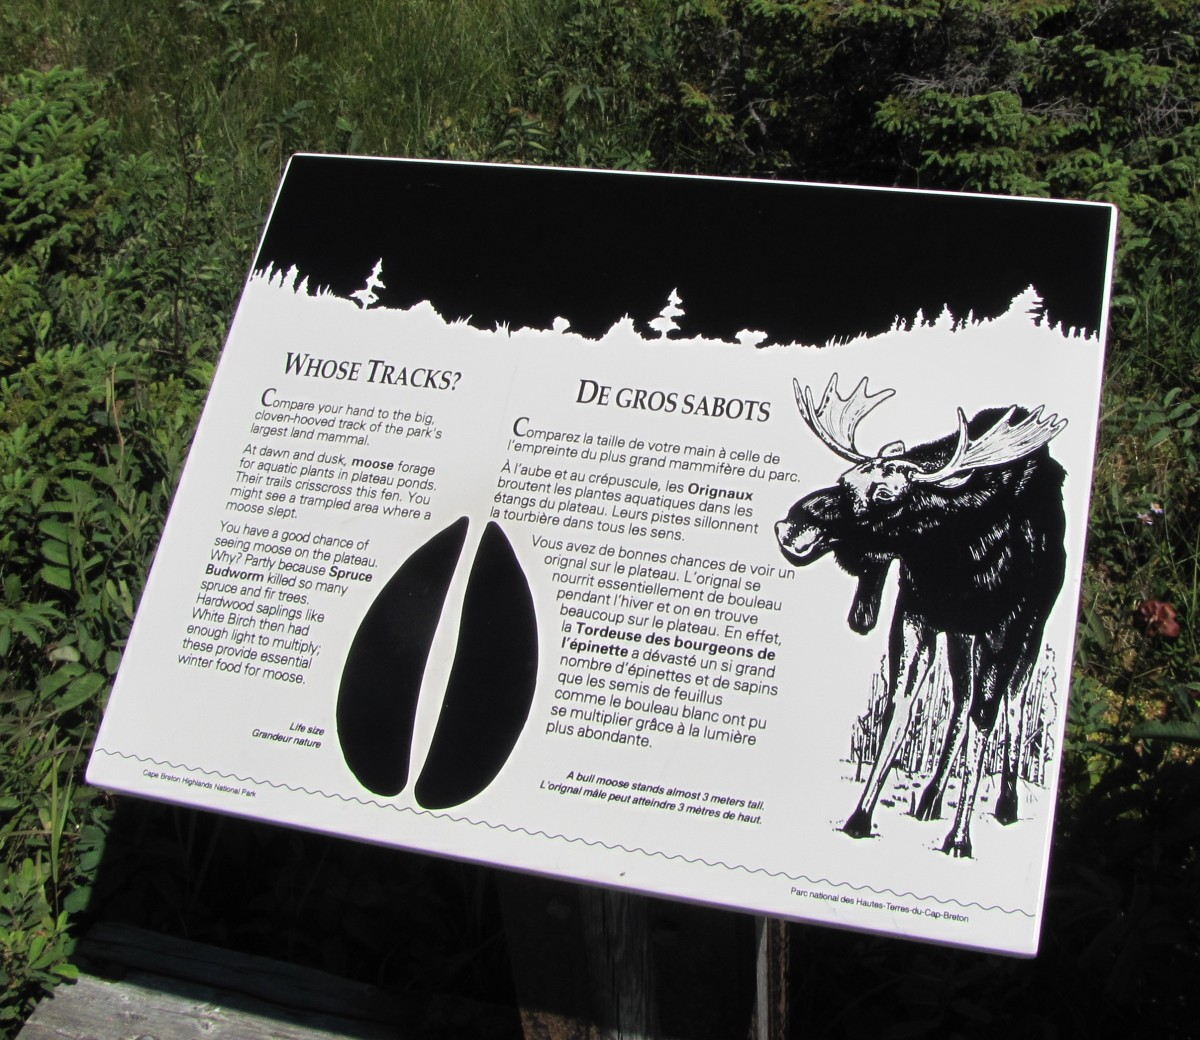 An informative sign about moose tracks.